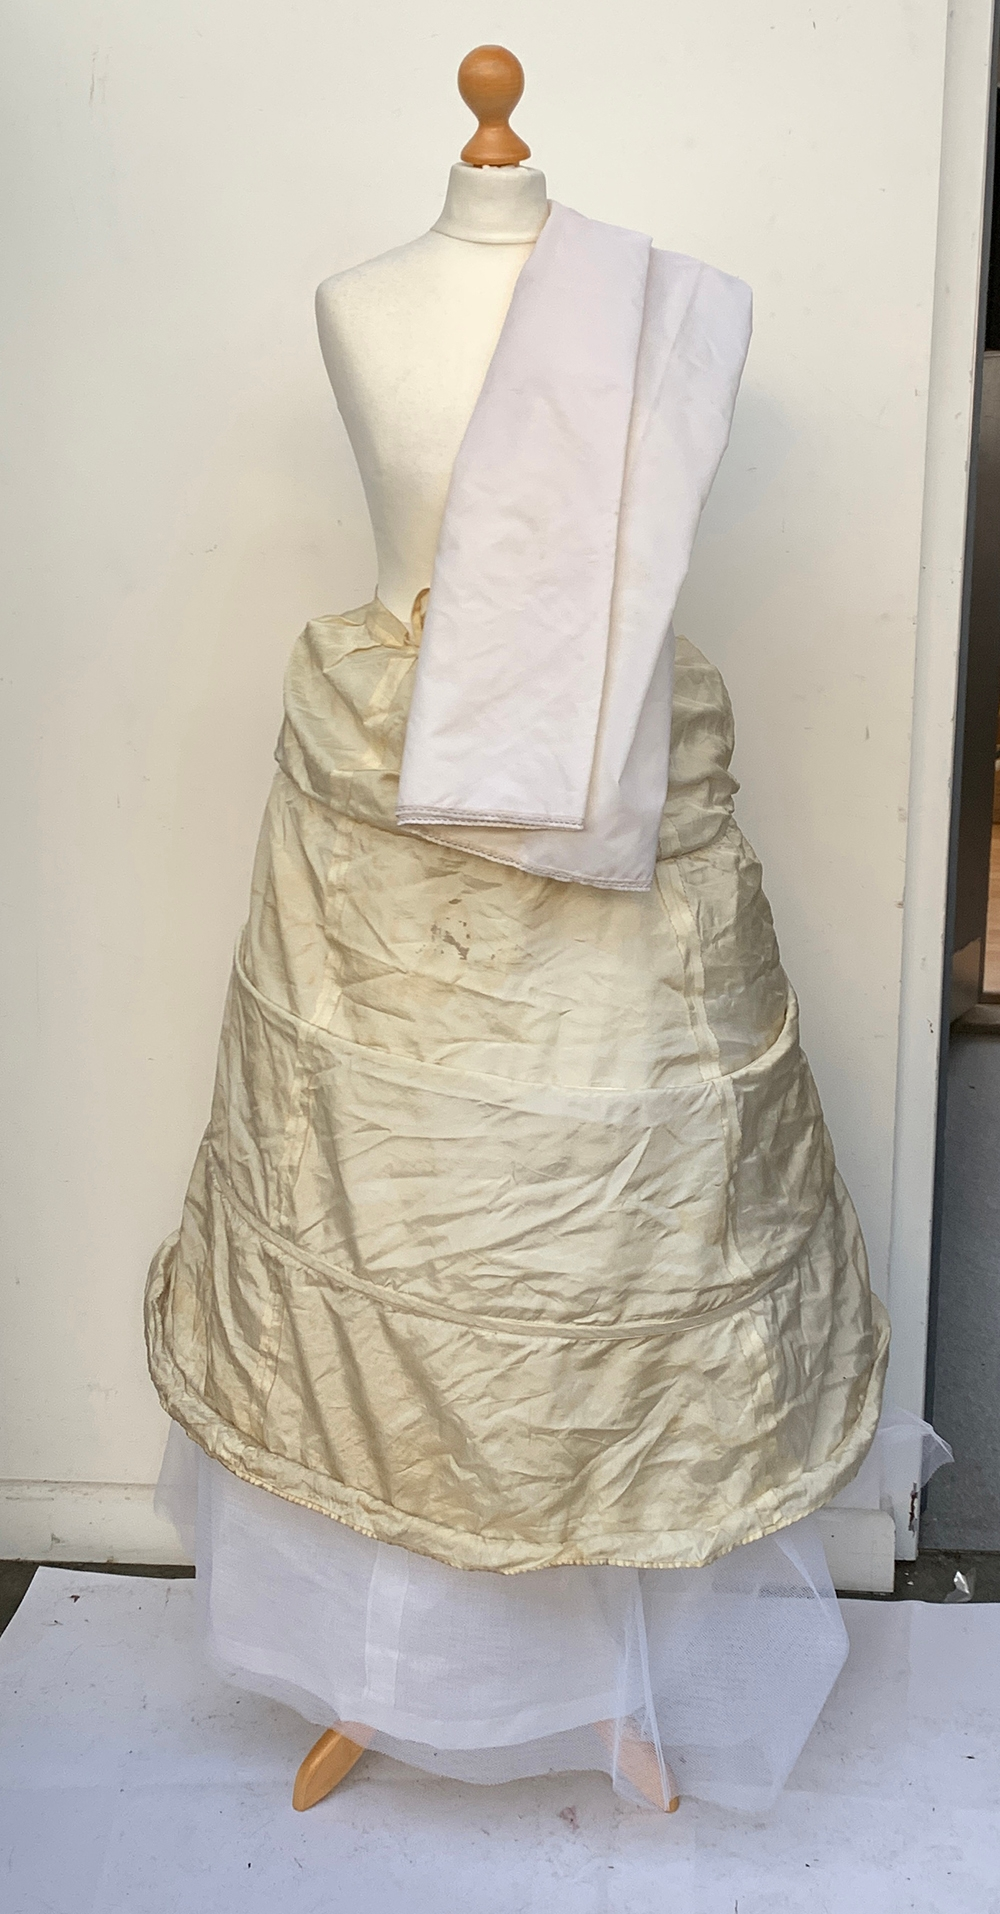 A vintage Lilywhites tennis skirt, together with an underskirt, hooped skirt, etc, in a large - Image 4 of 5